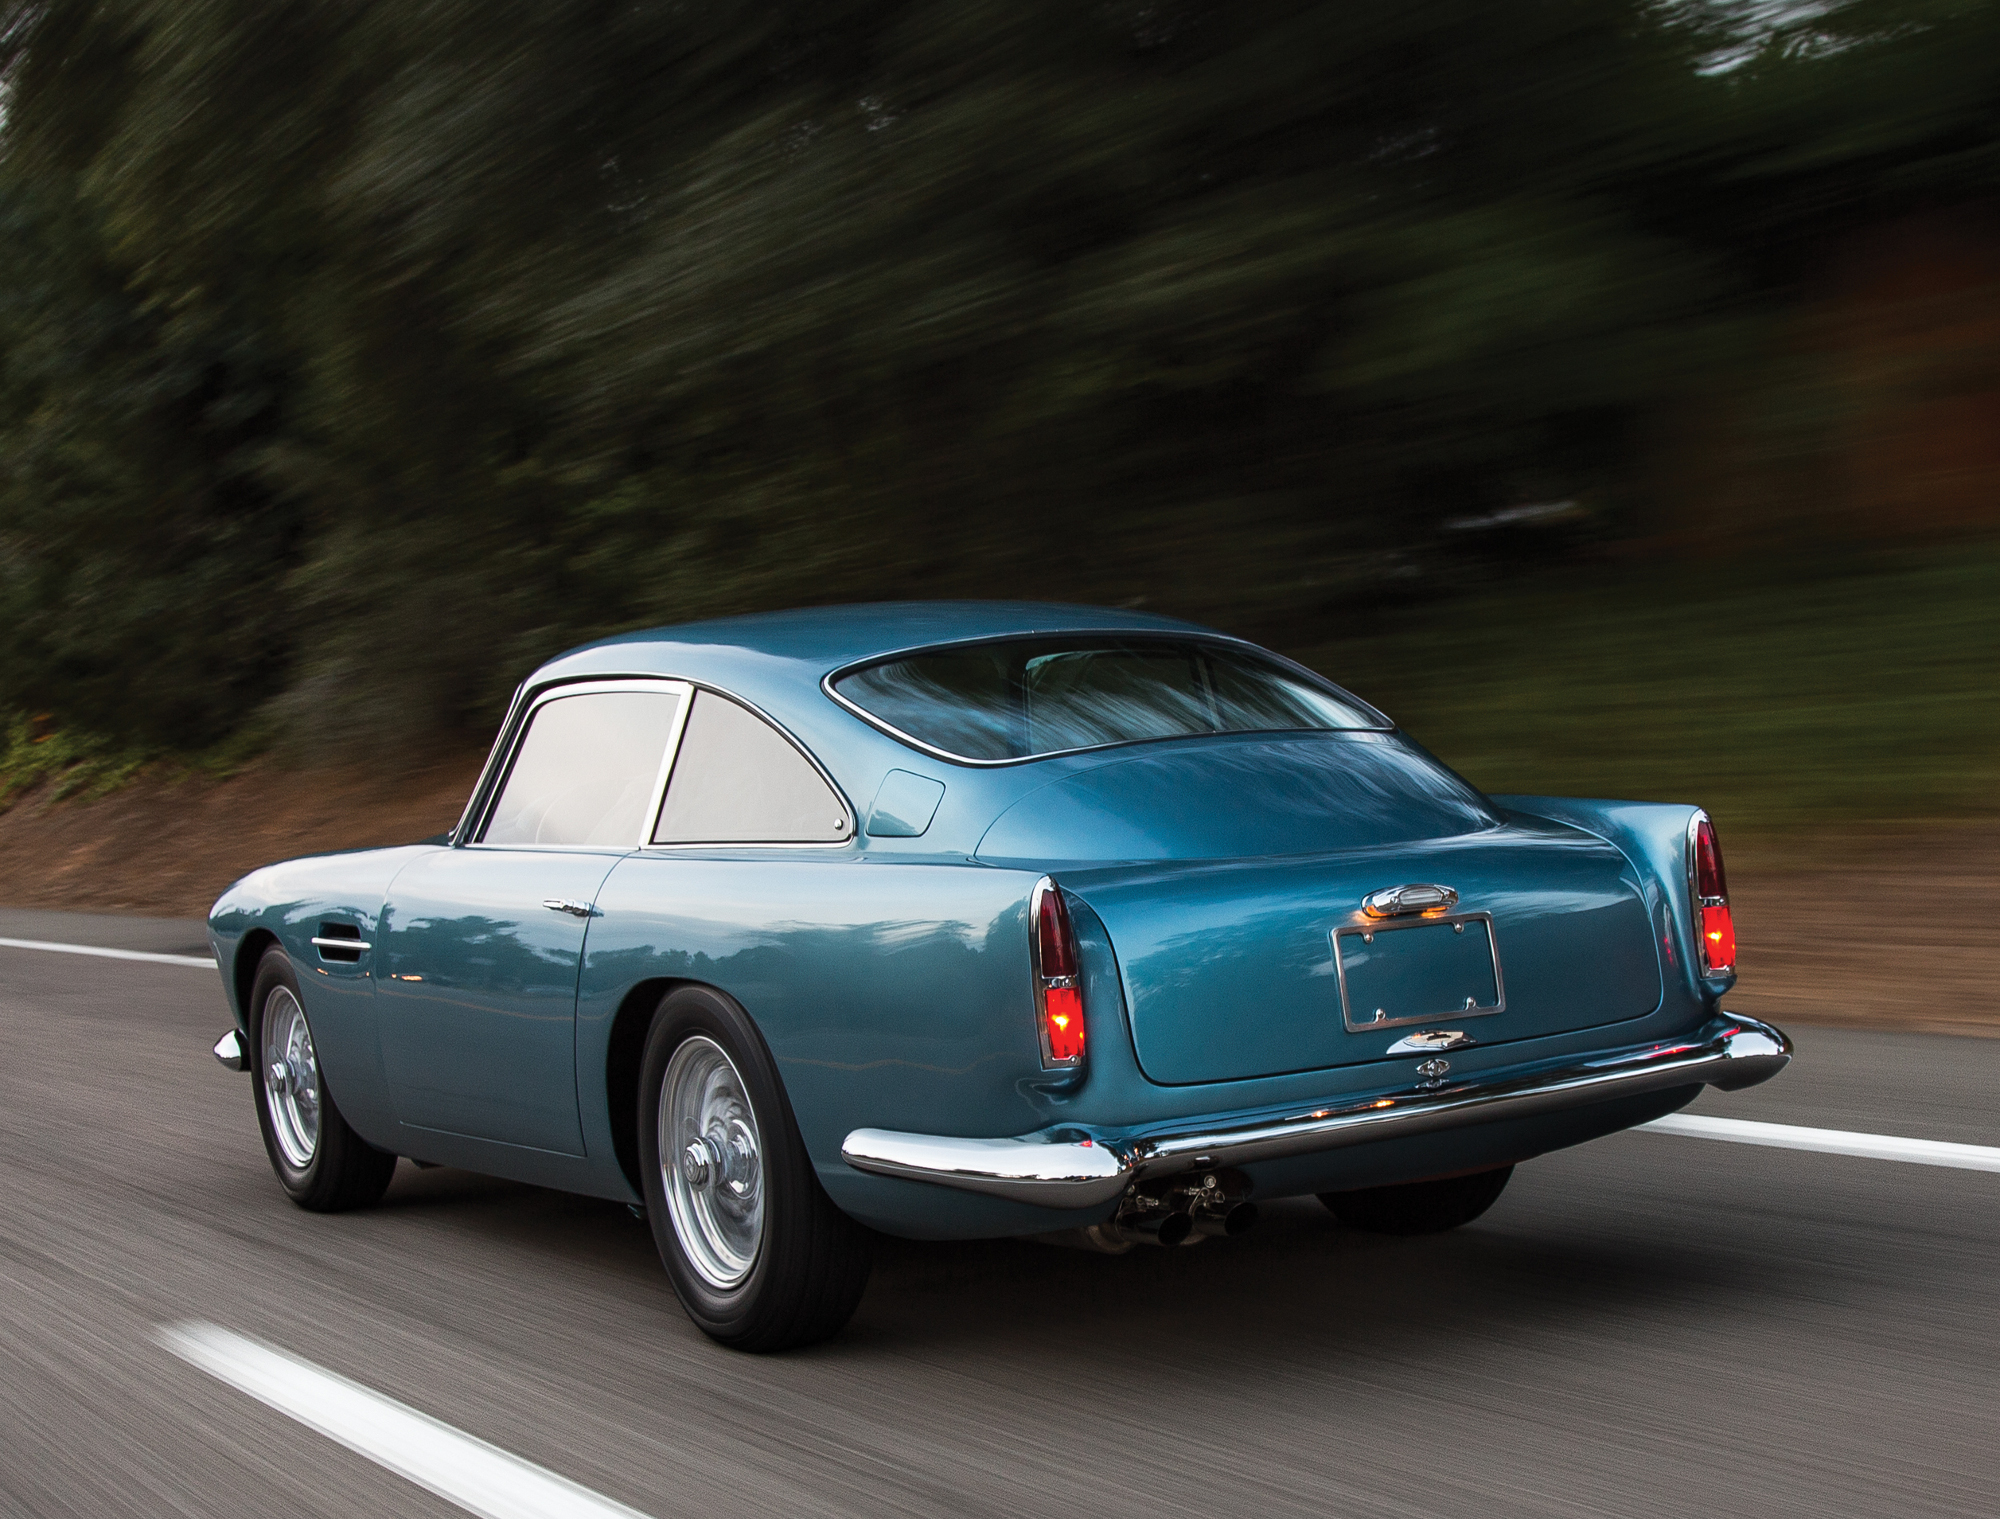 The elegant beauty of the Aston Martin DB4 as commonly admired from a rear quartering angle as one is passed by one.